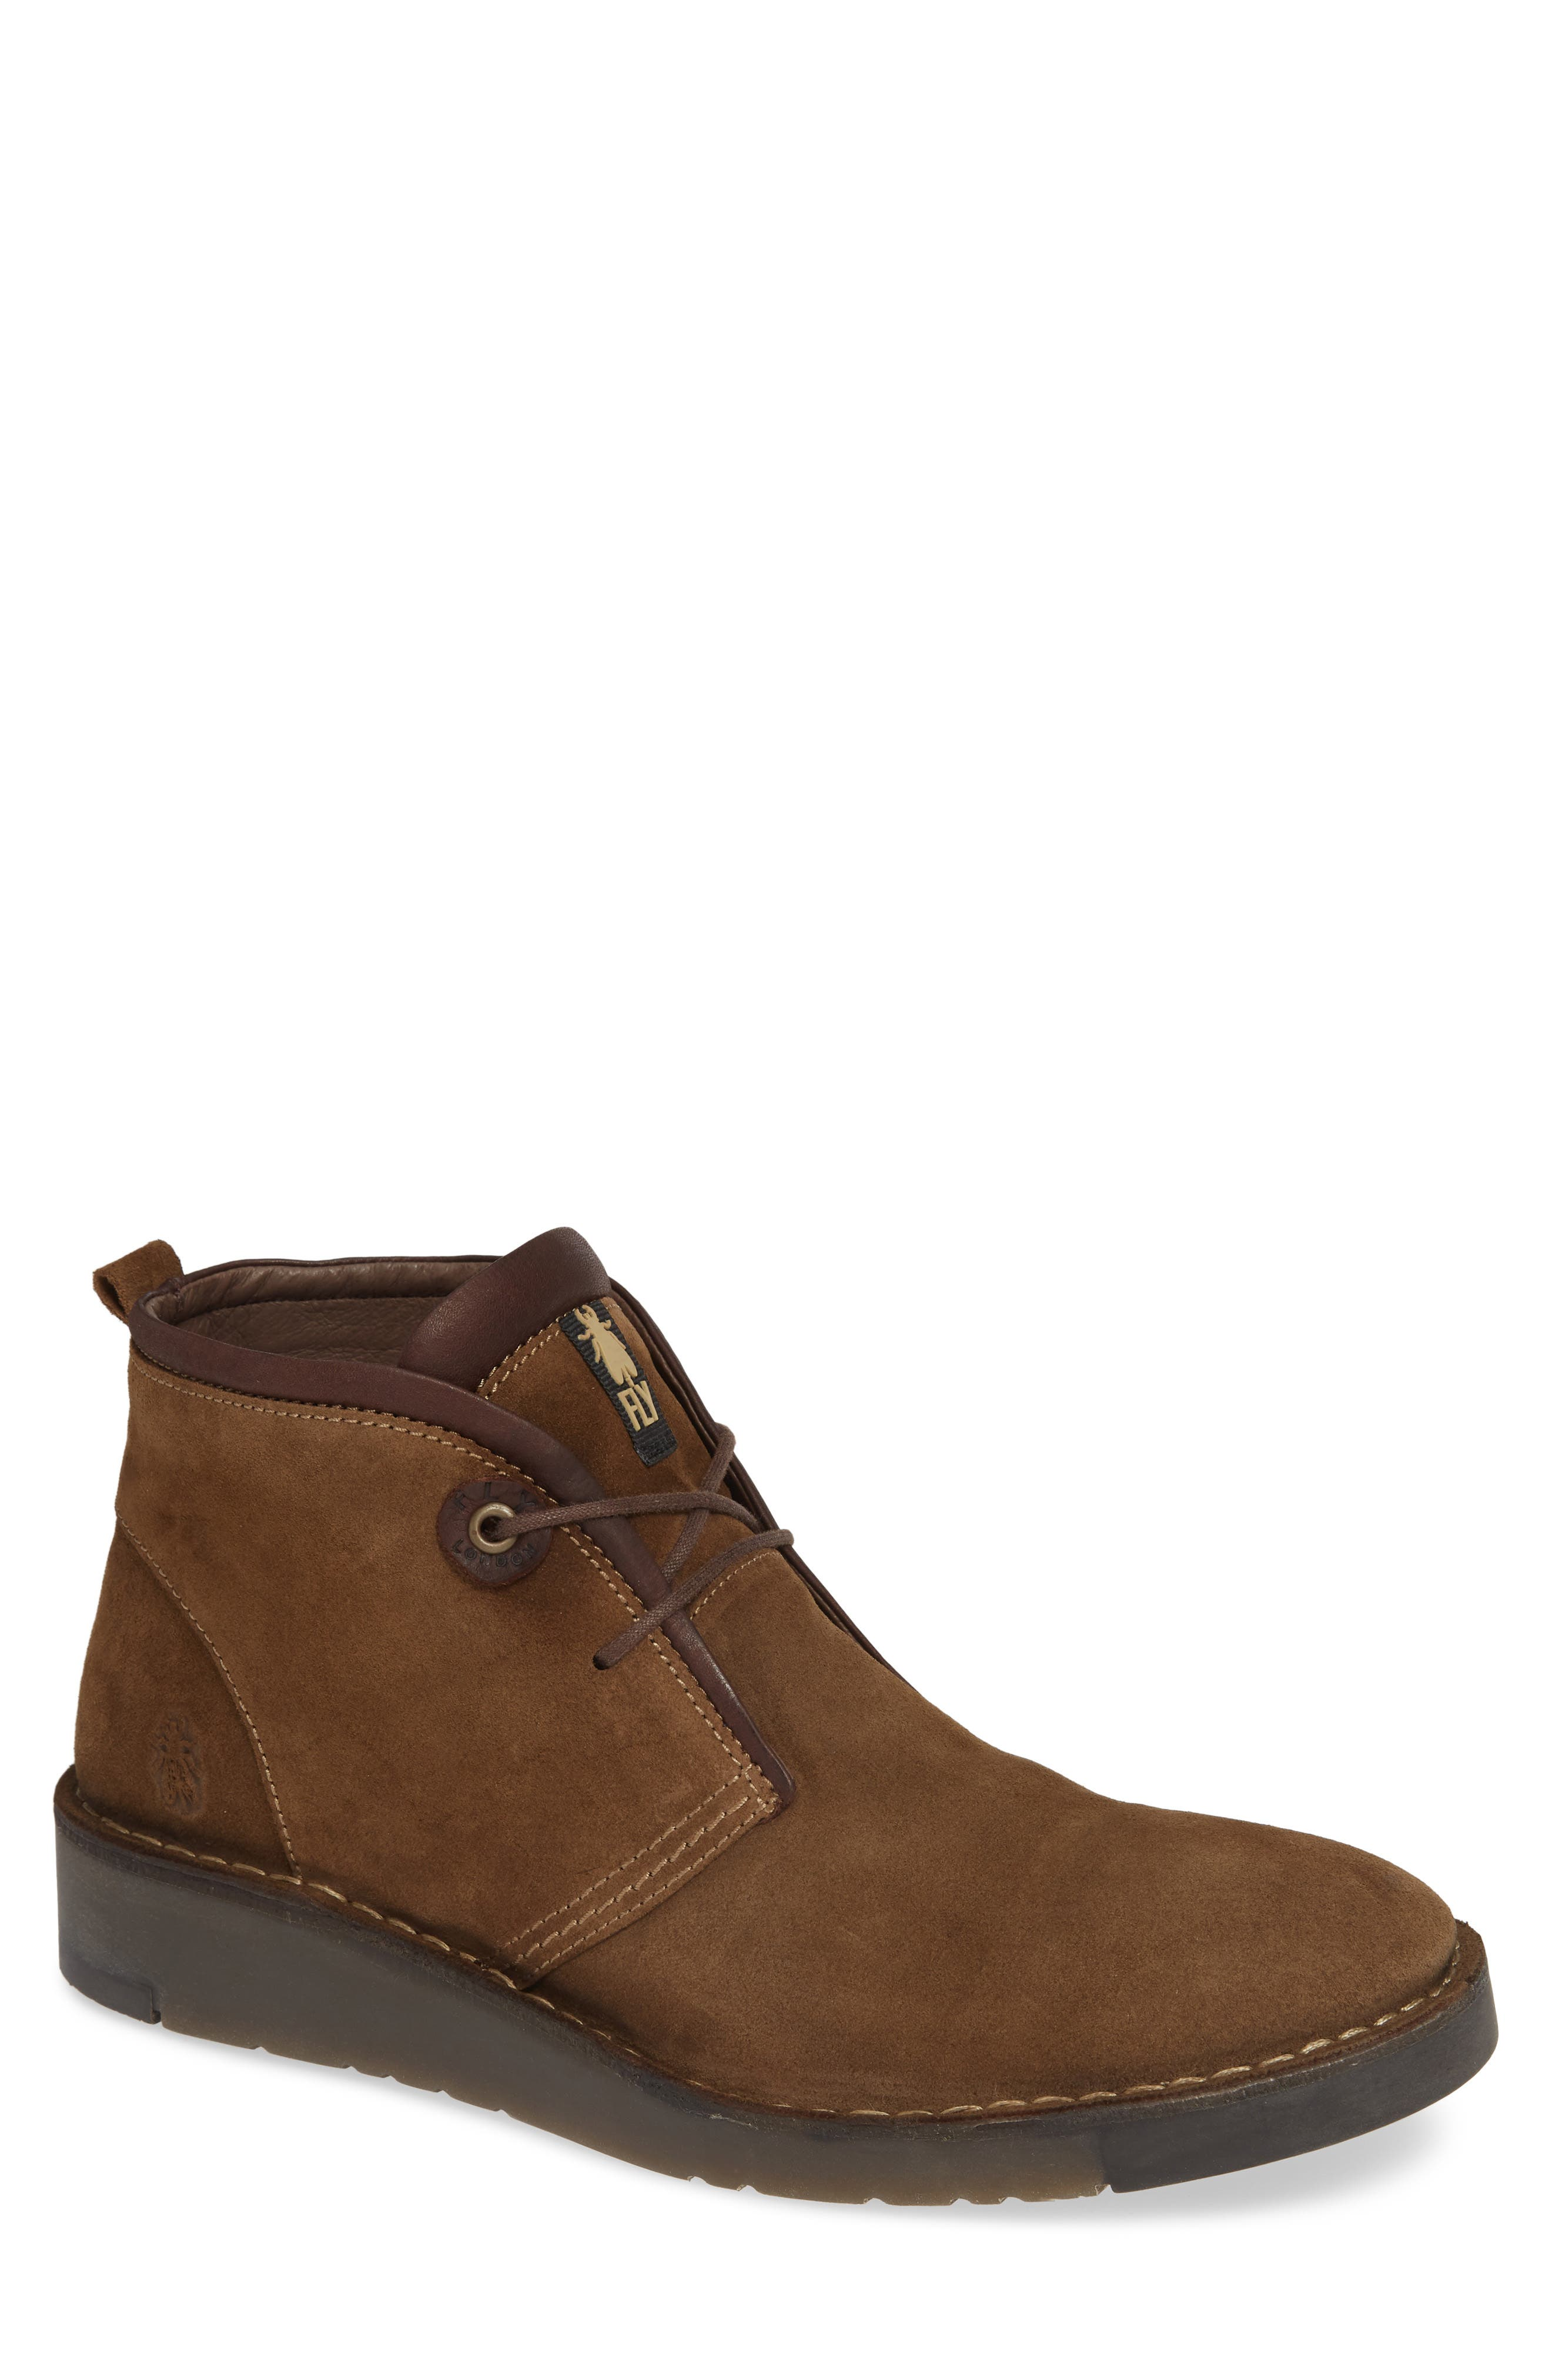 Fly London Sion Water Resistant Chukka Boot, Beige